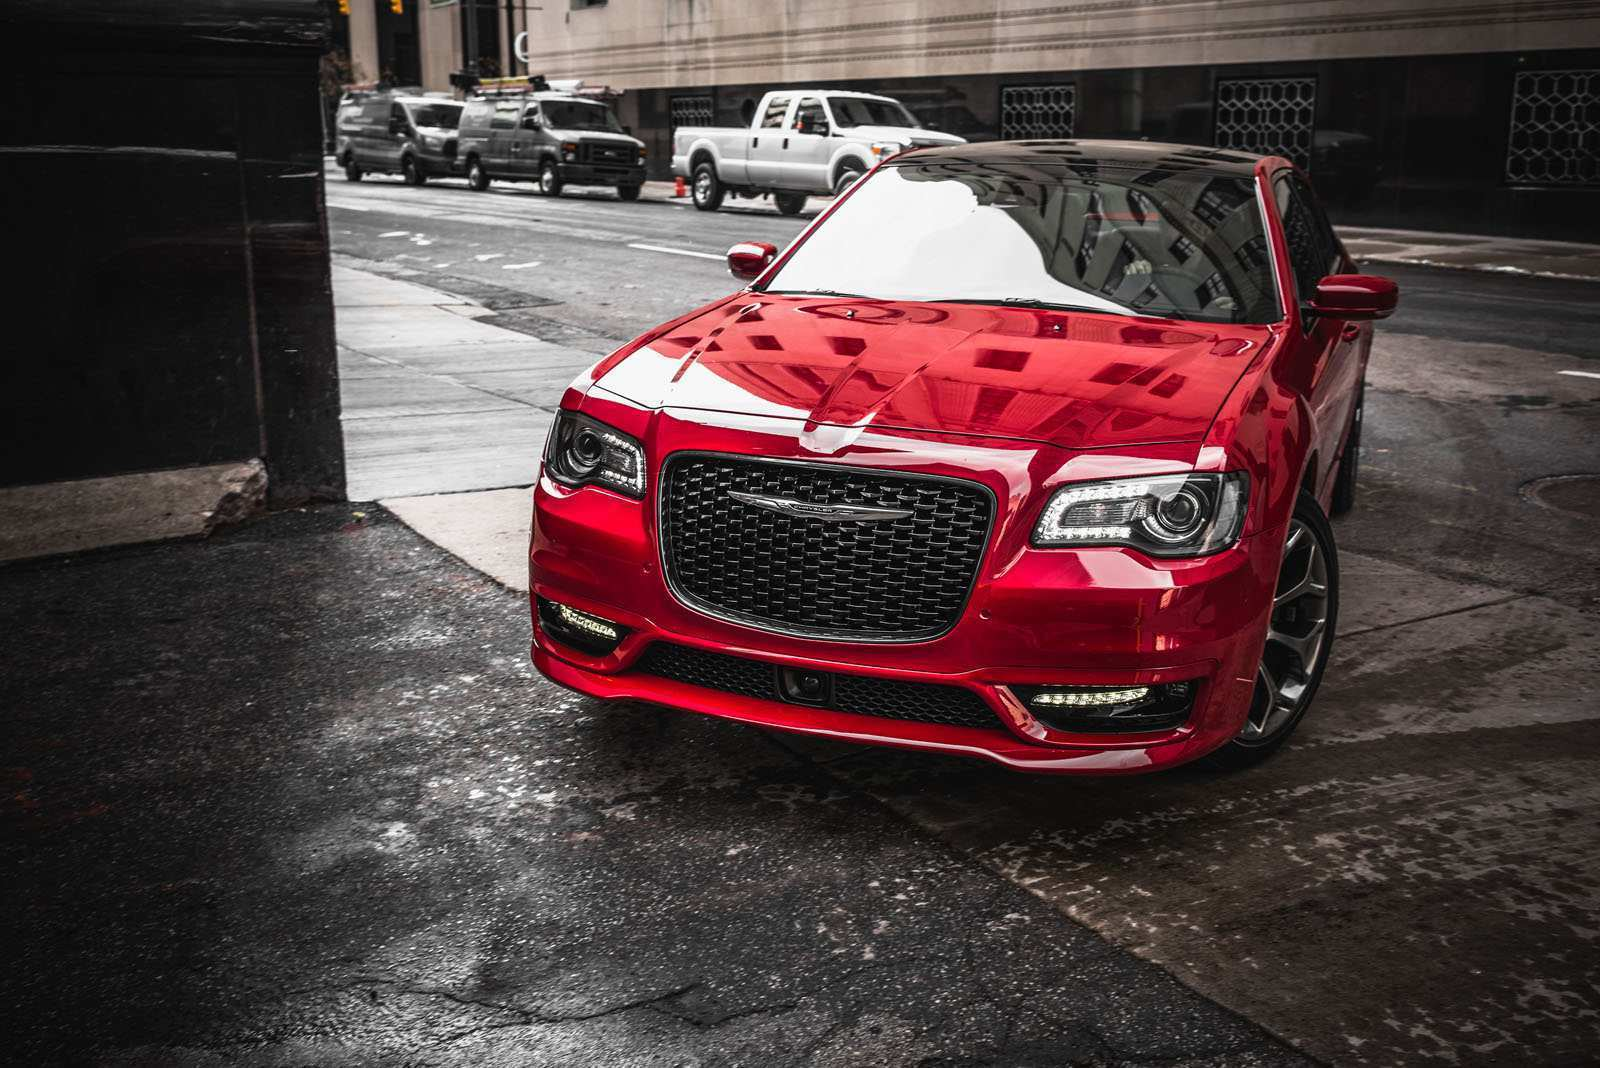 27 Concept of 2019 Chrysler 300 Review Engine by 2019 Chrysler 300 Review